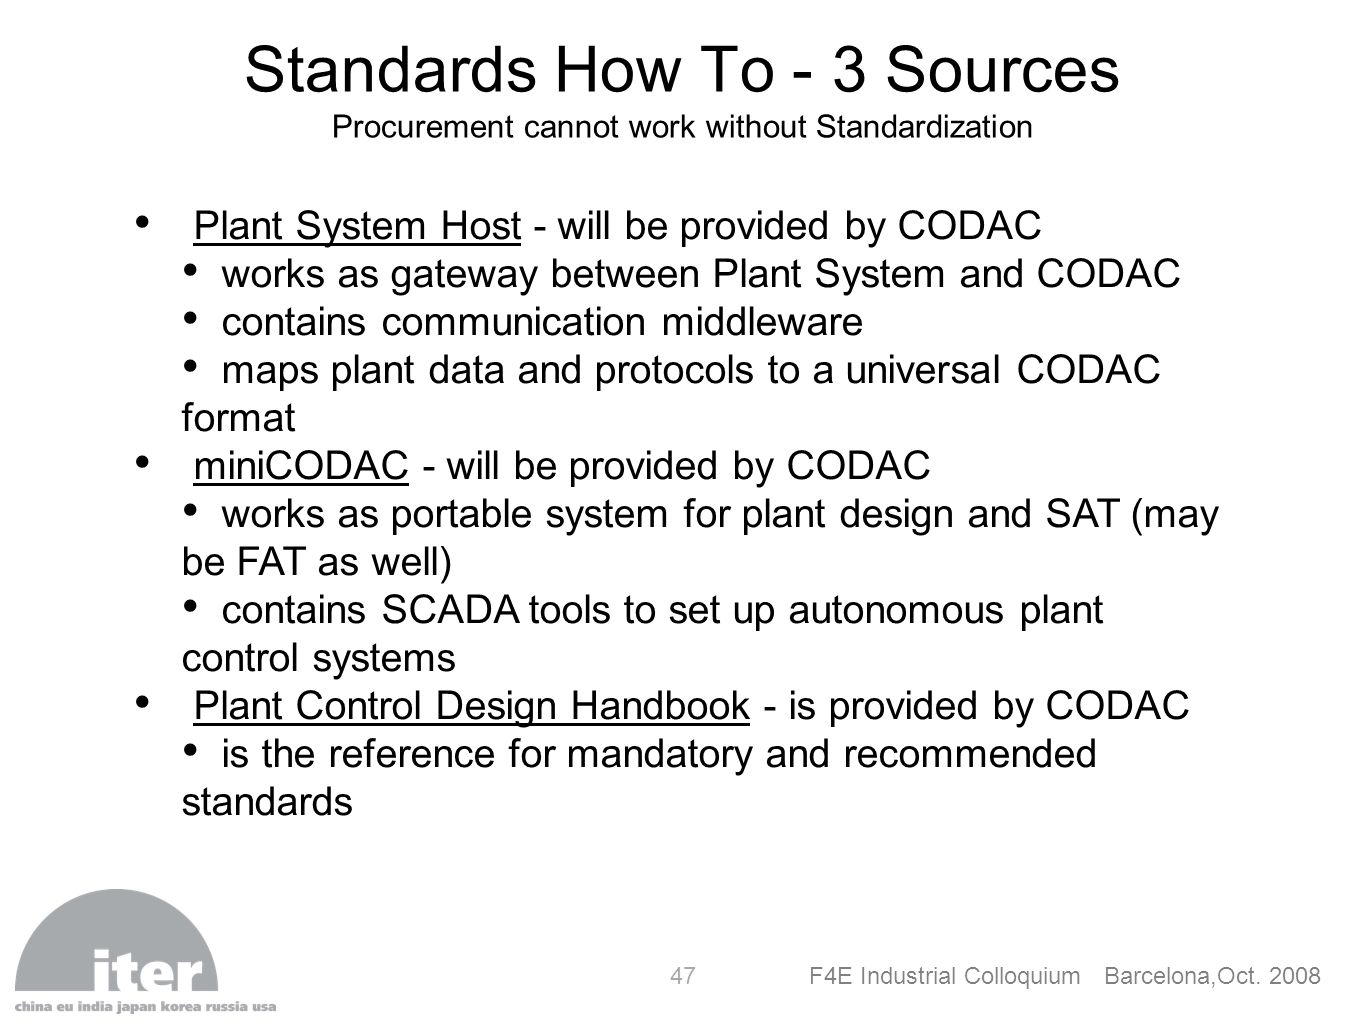 F4E Industrial Colloquium Barcelona,Oct. 2008 47 Standards How To - 3 Sources Procurement cannot work without Standardization Plant System Host - will